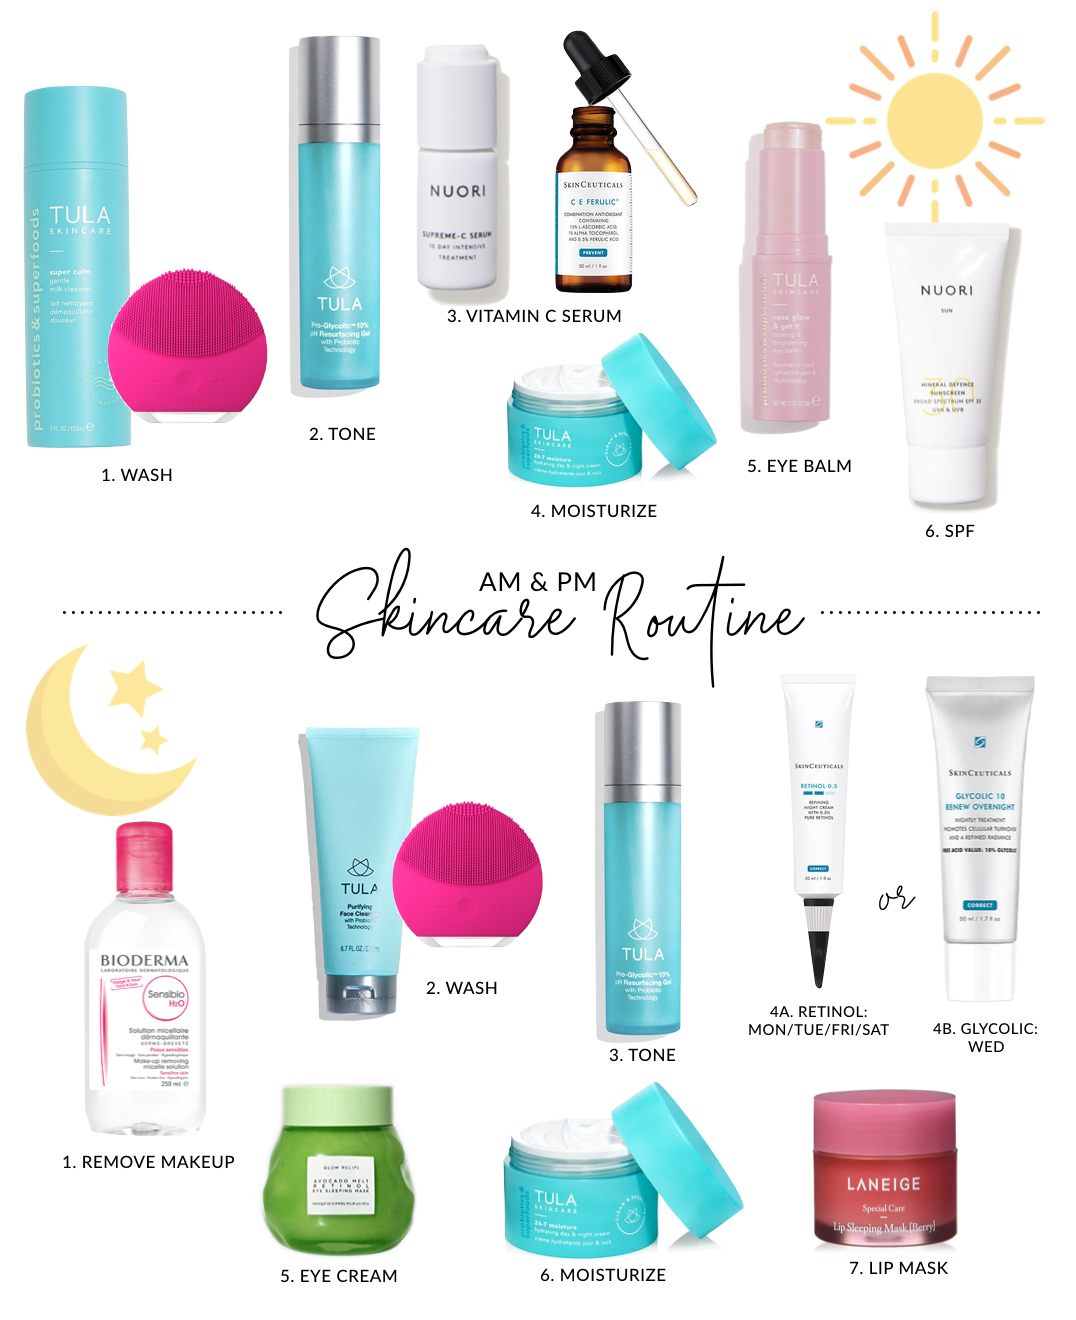 Order To Apply Skin Care Products My Morning Night Routine Apply Care Guide Lay Skin Care Routine Order Skin Care Routine Steps Night Skin Care Routine